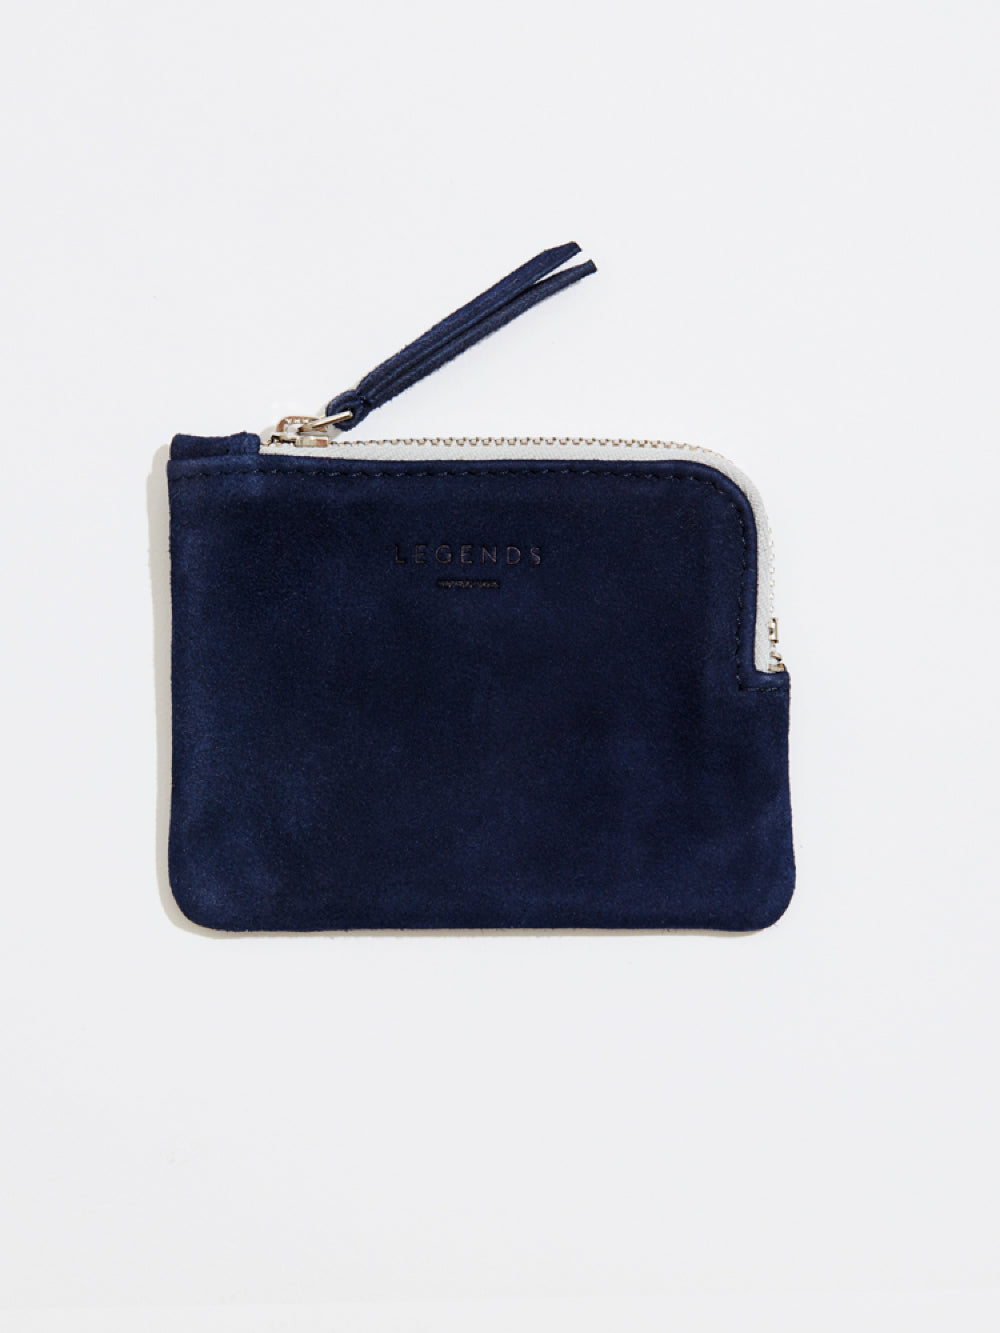 Frankport Suede Wallet | Navy Blue